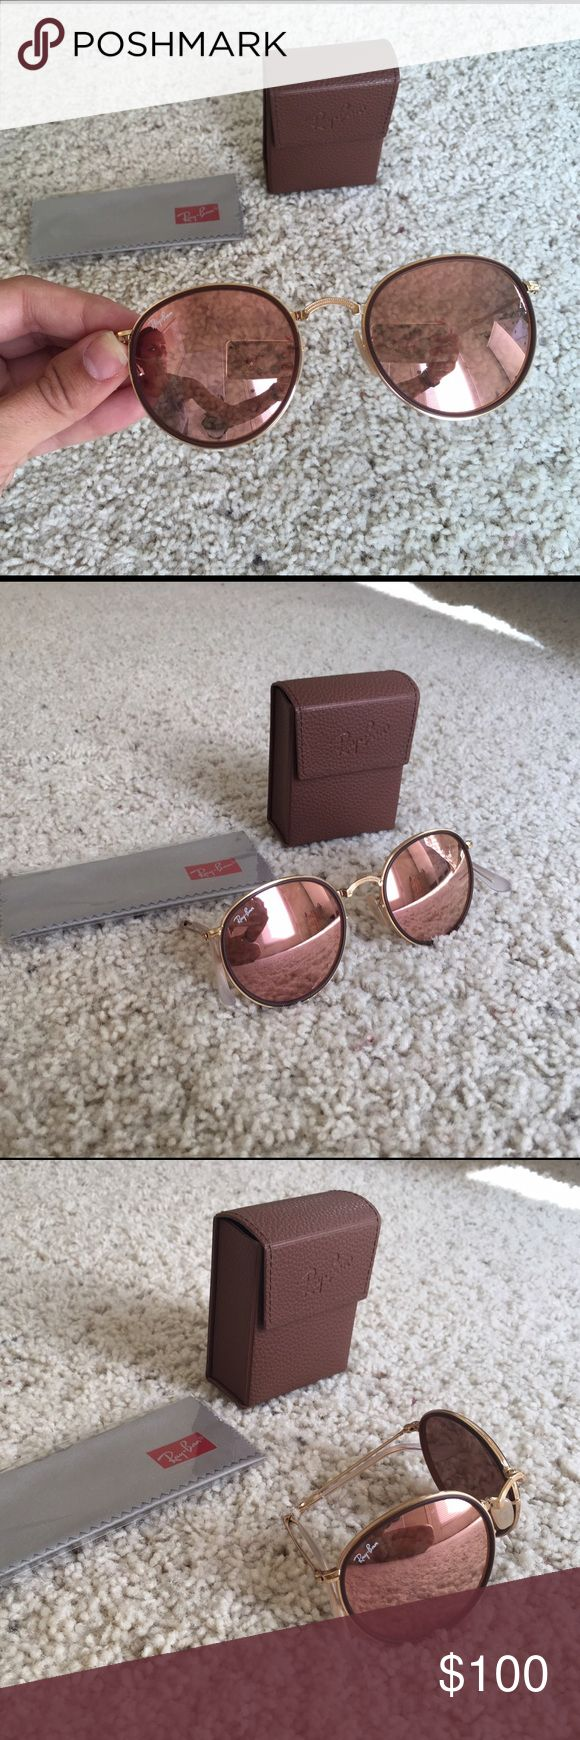 Rose Gold Round Folding Ray-Ban's Ray-Ban Round Metal folding sunglasses in Rose Gold. Purchased in February this year barely worn. Ray-Ban Accessories Sunglasses